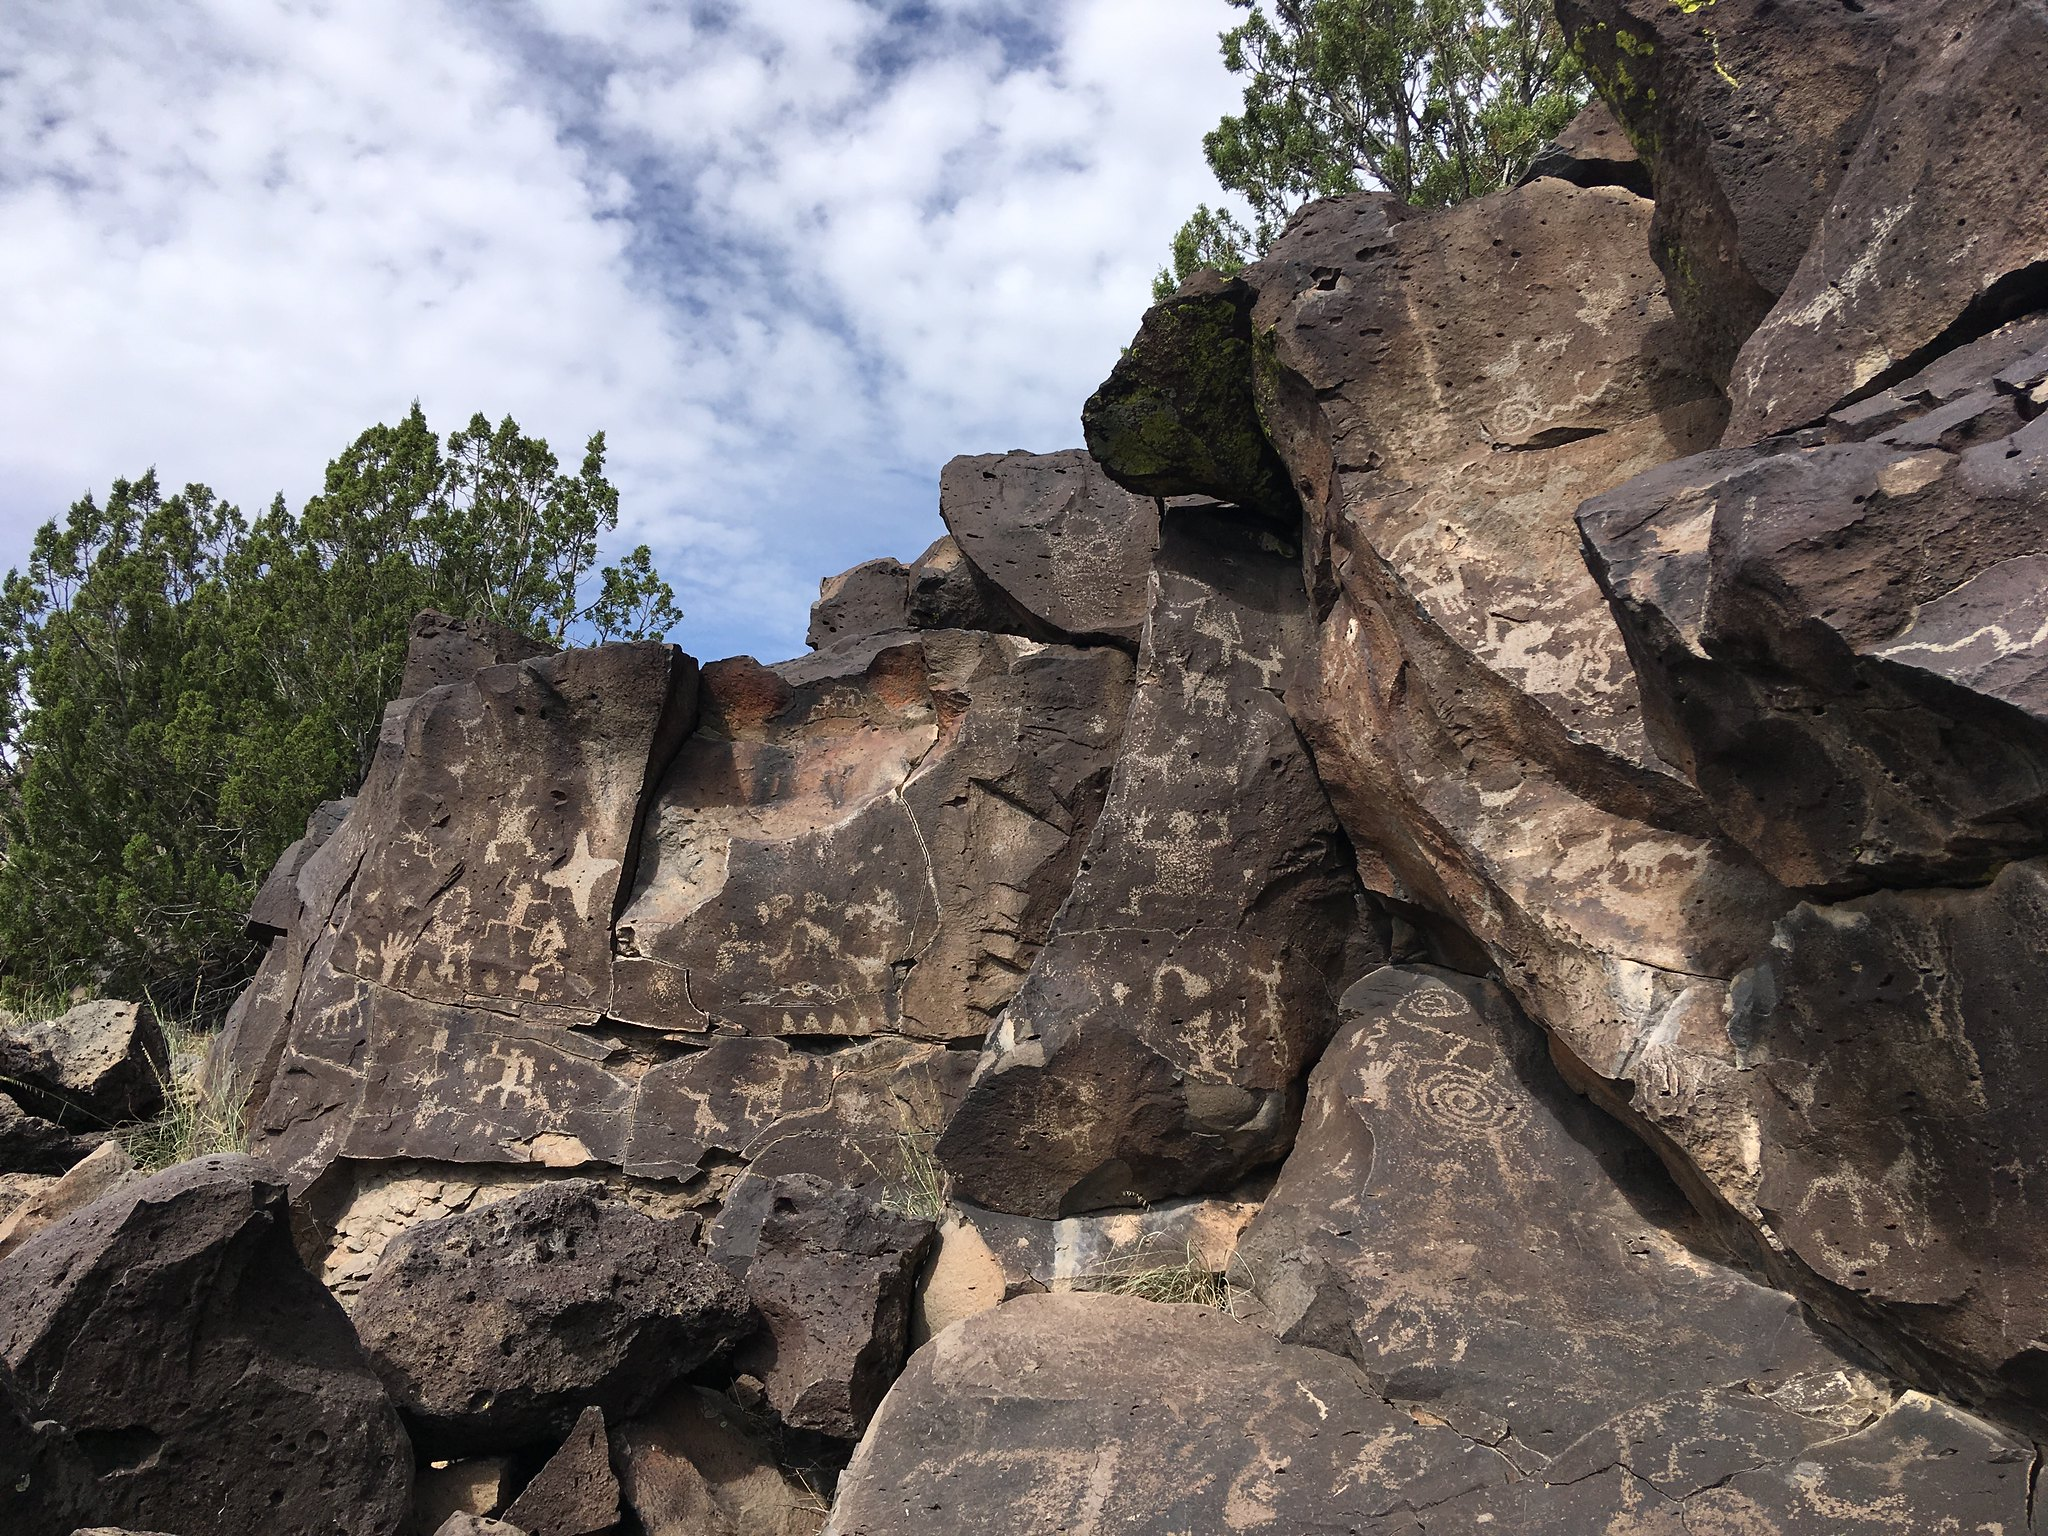 Petroglyphs etched in dark-colored rock.